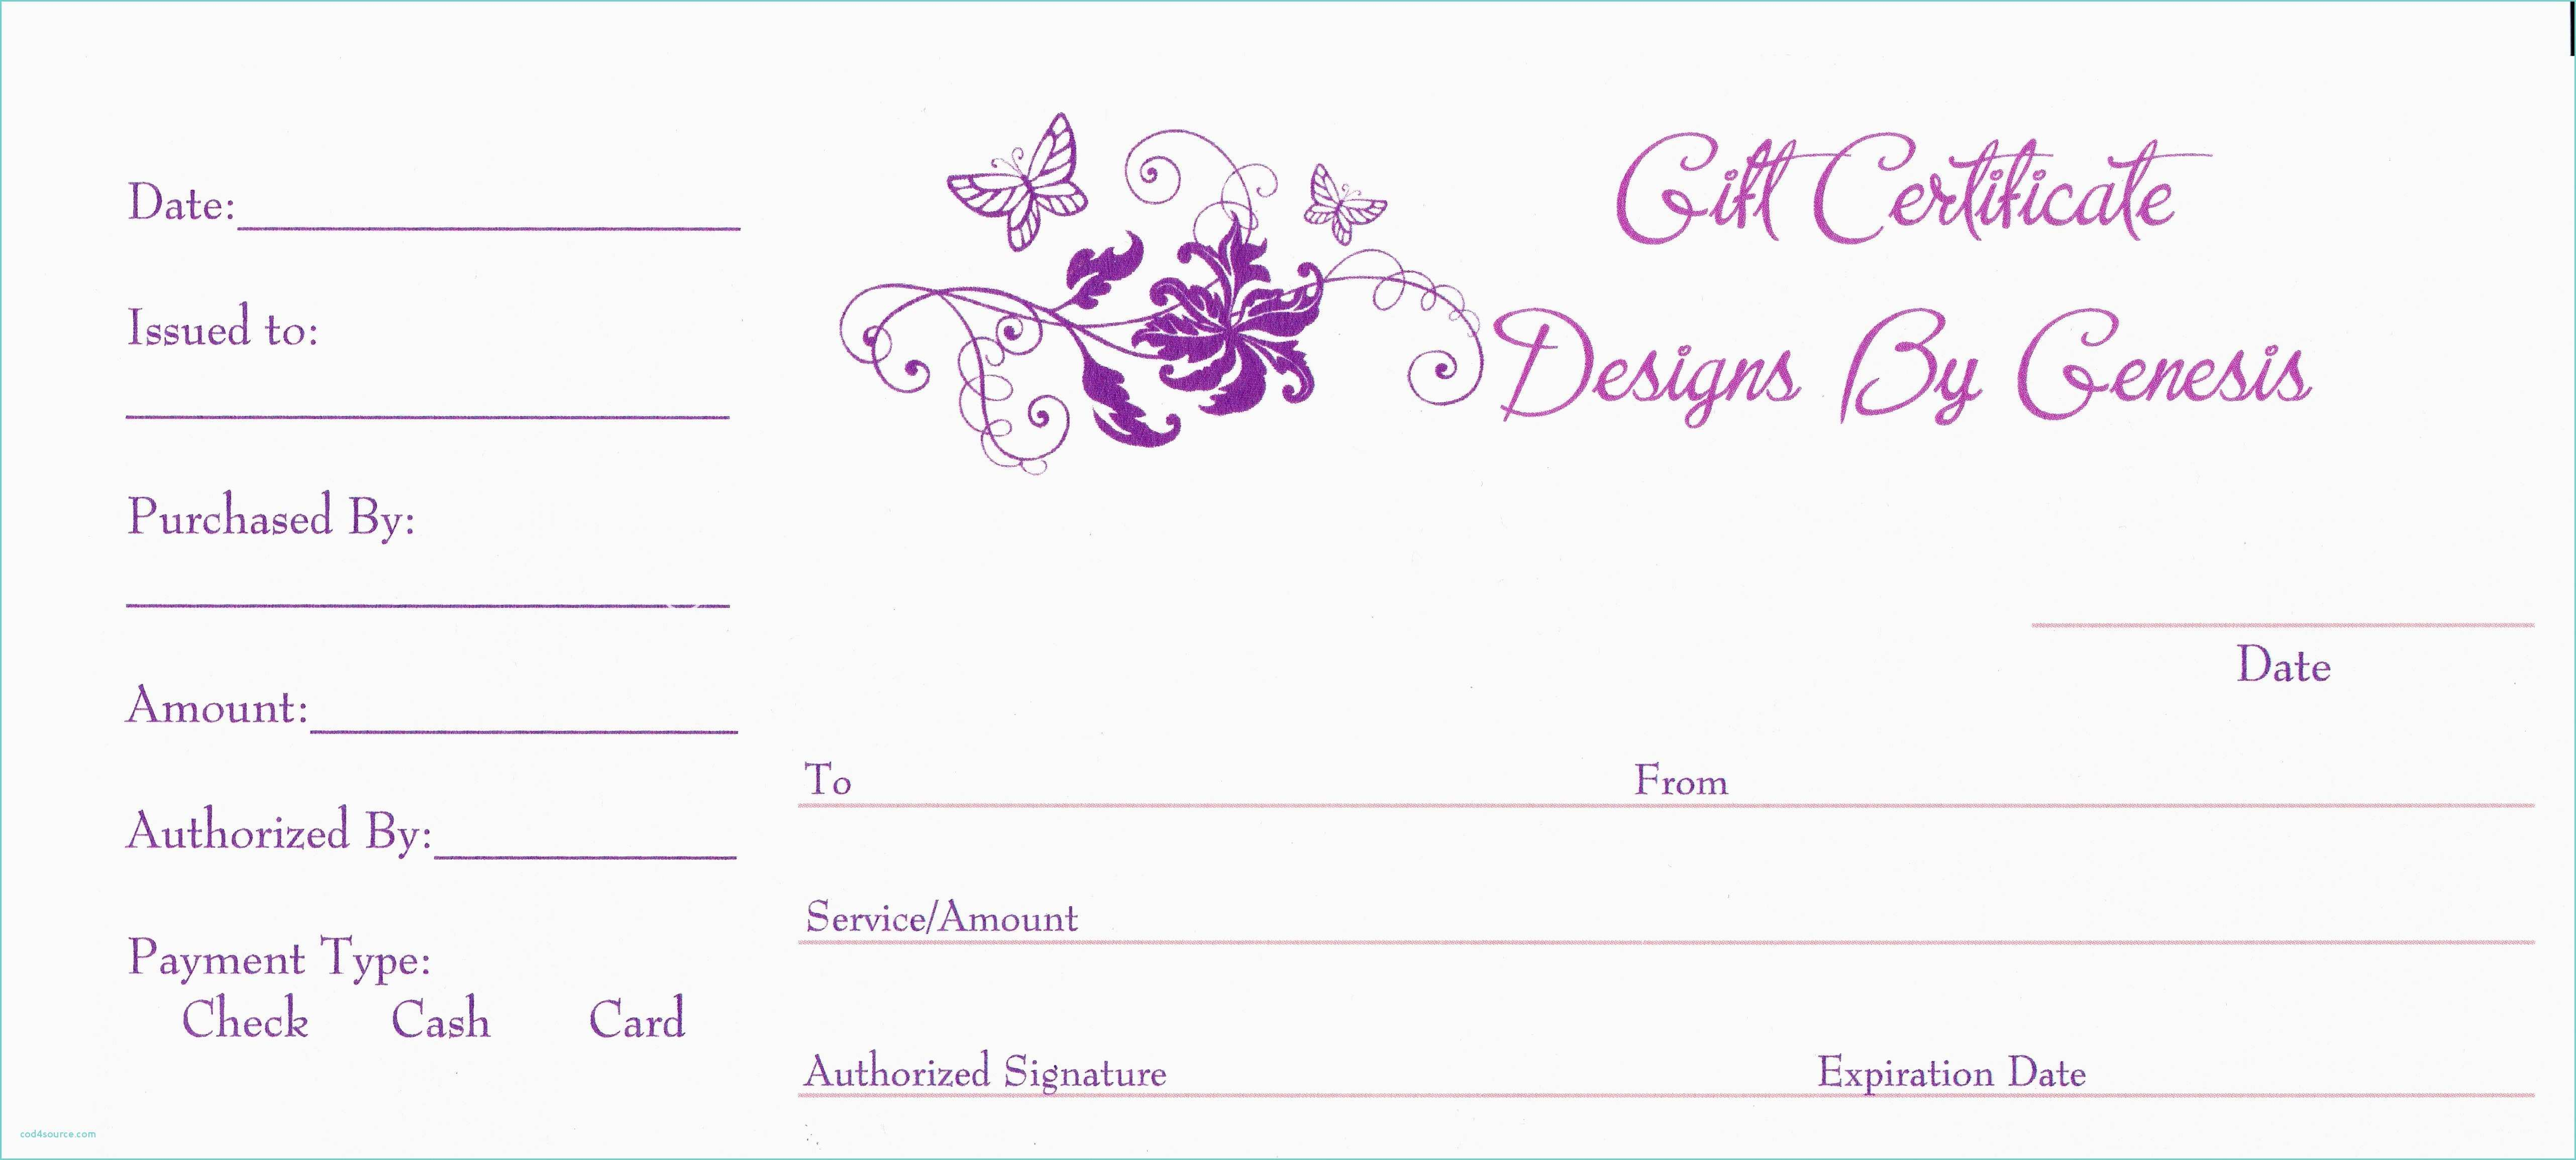 Print Your Own Valentines Free Printable Massage Gift Certificate - Free Printable Massage Gift Certificate Templates